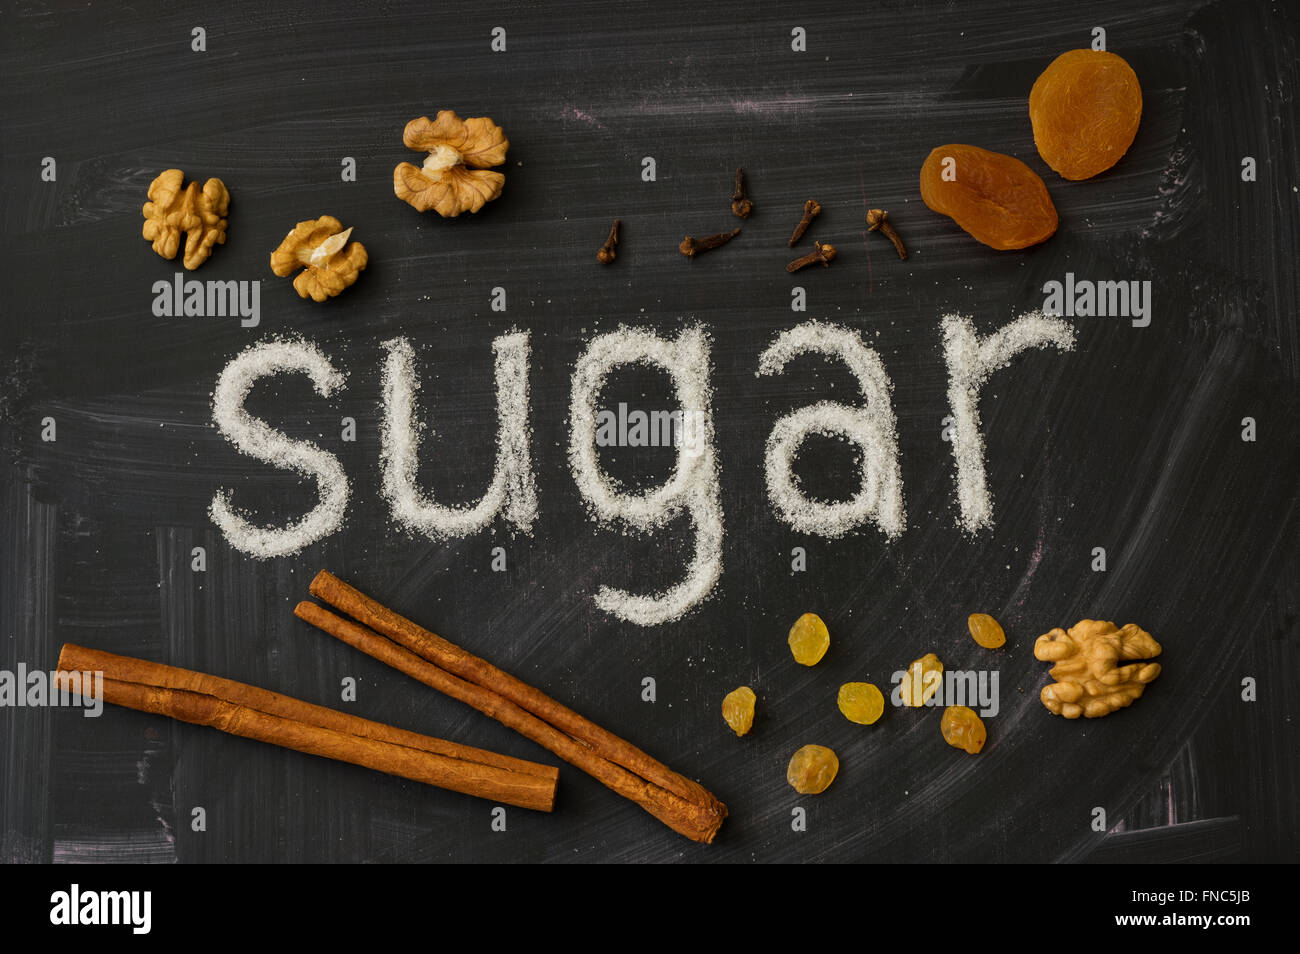 Word made of sugar describe SUGAR, decorated with spices, cinnamon, raisin and walnuts - Stock Image